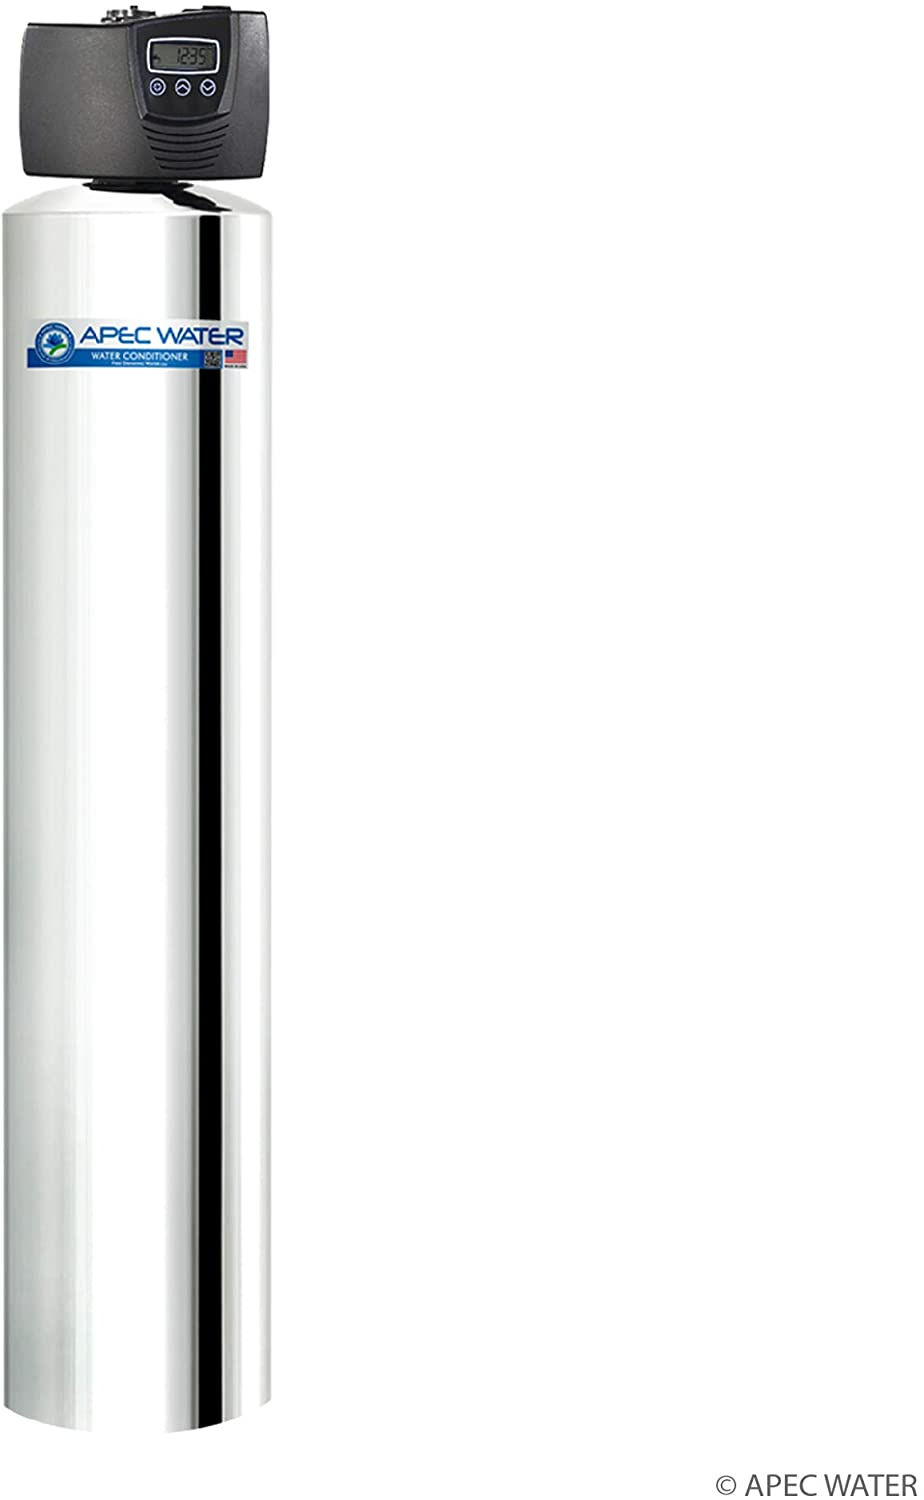 APEC Water Systems WTS-MAX-10 Flagship Whole House Water Filter System with Electronic Control Valve, Removes Chlorine, Chloramine, Hydrogen Sulfide and More, Up to 1,000K Gallon